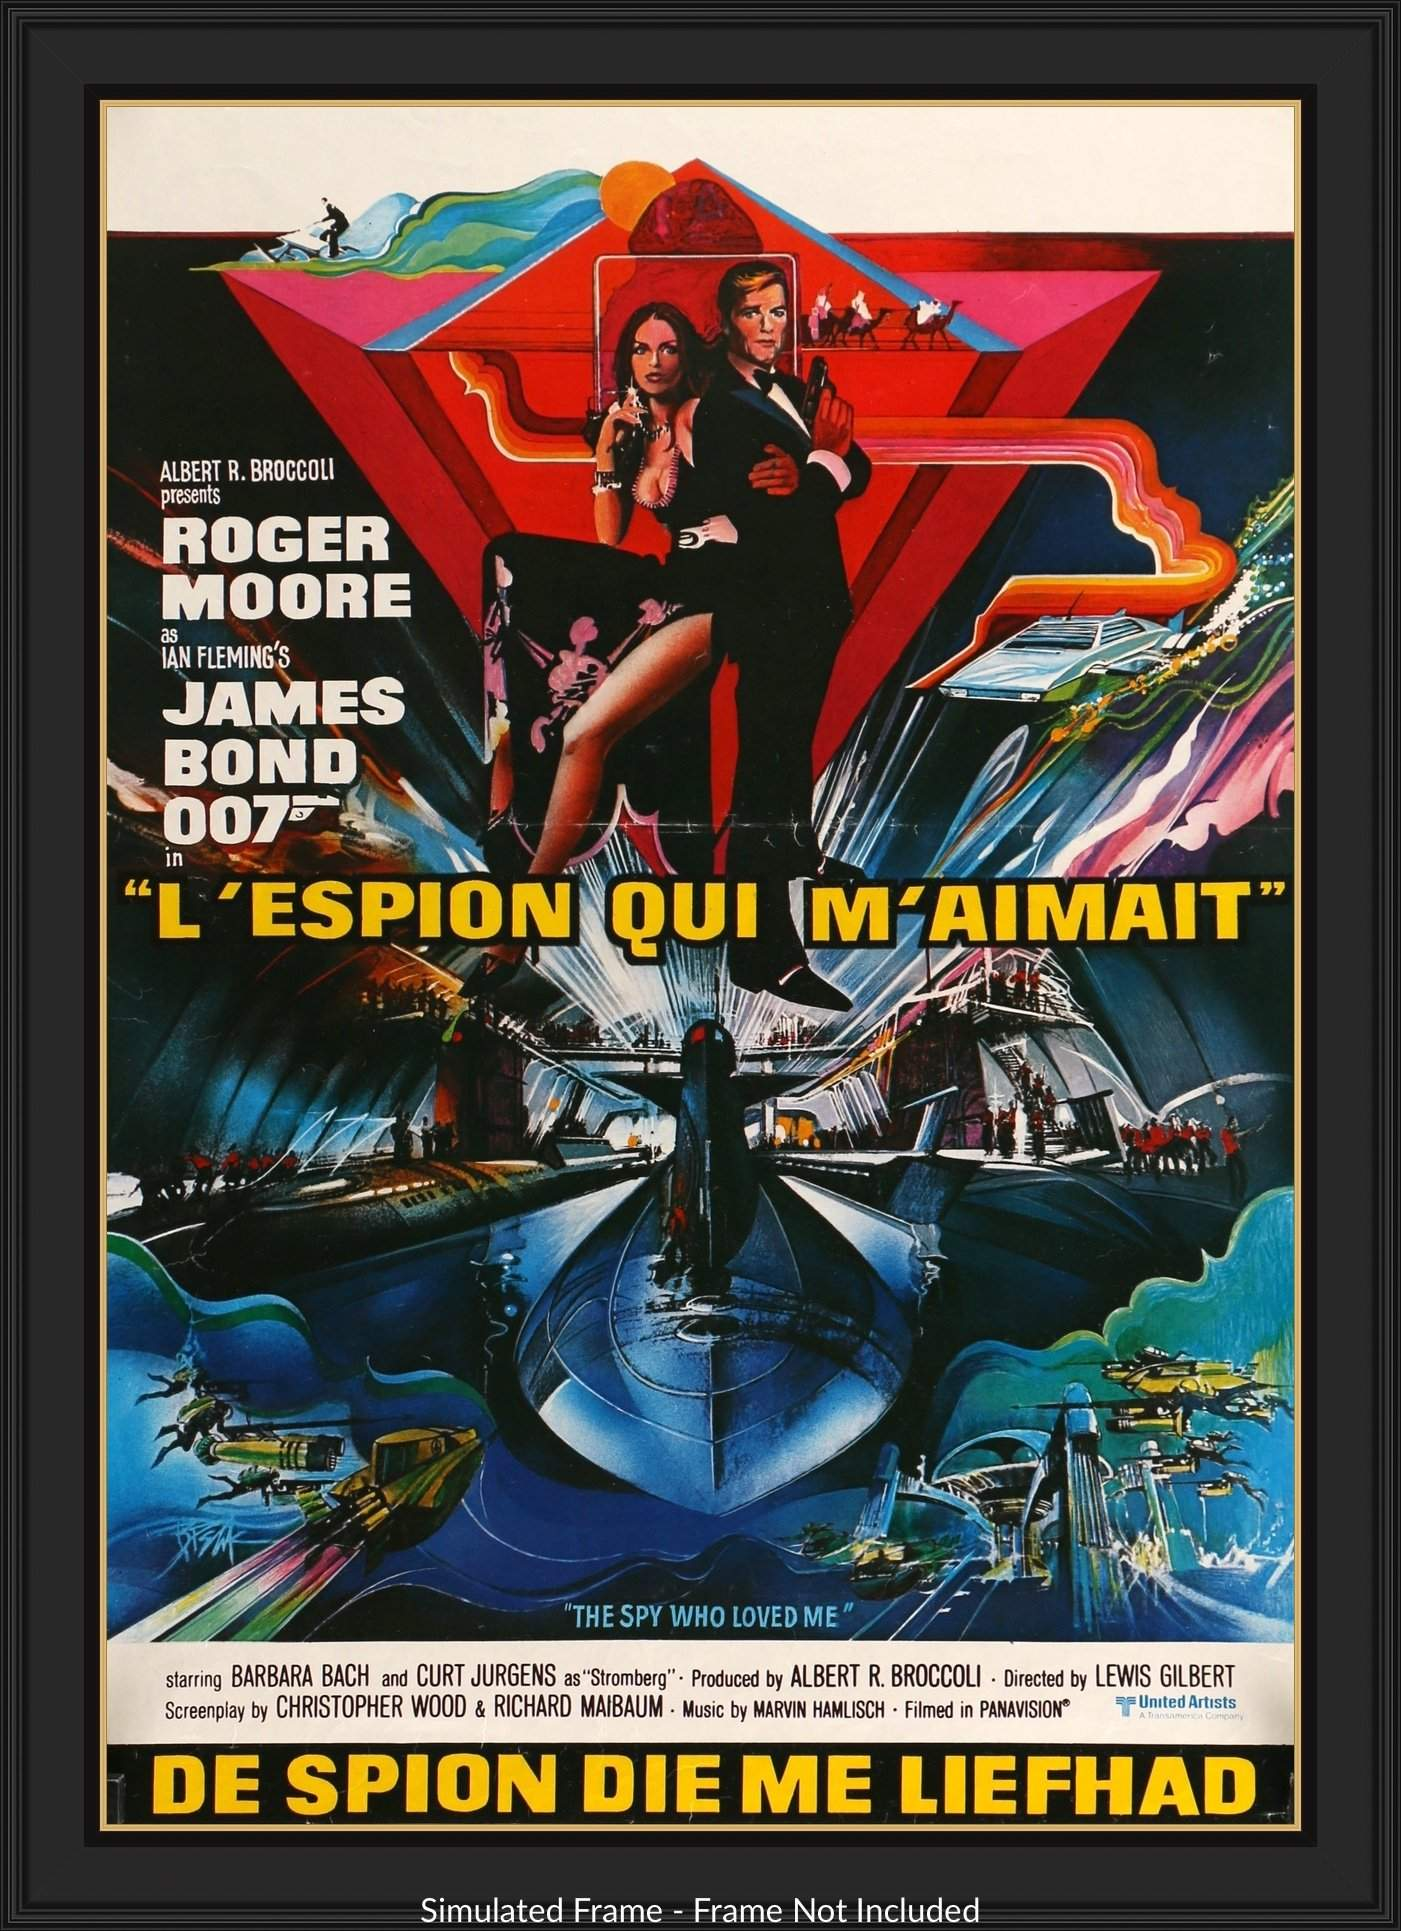 spy_who_loved_me_1977_belgian_original_film_art_f_2000x.jpg?v=1539682635